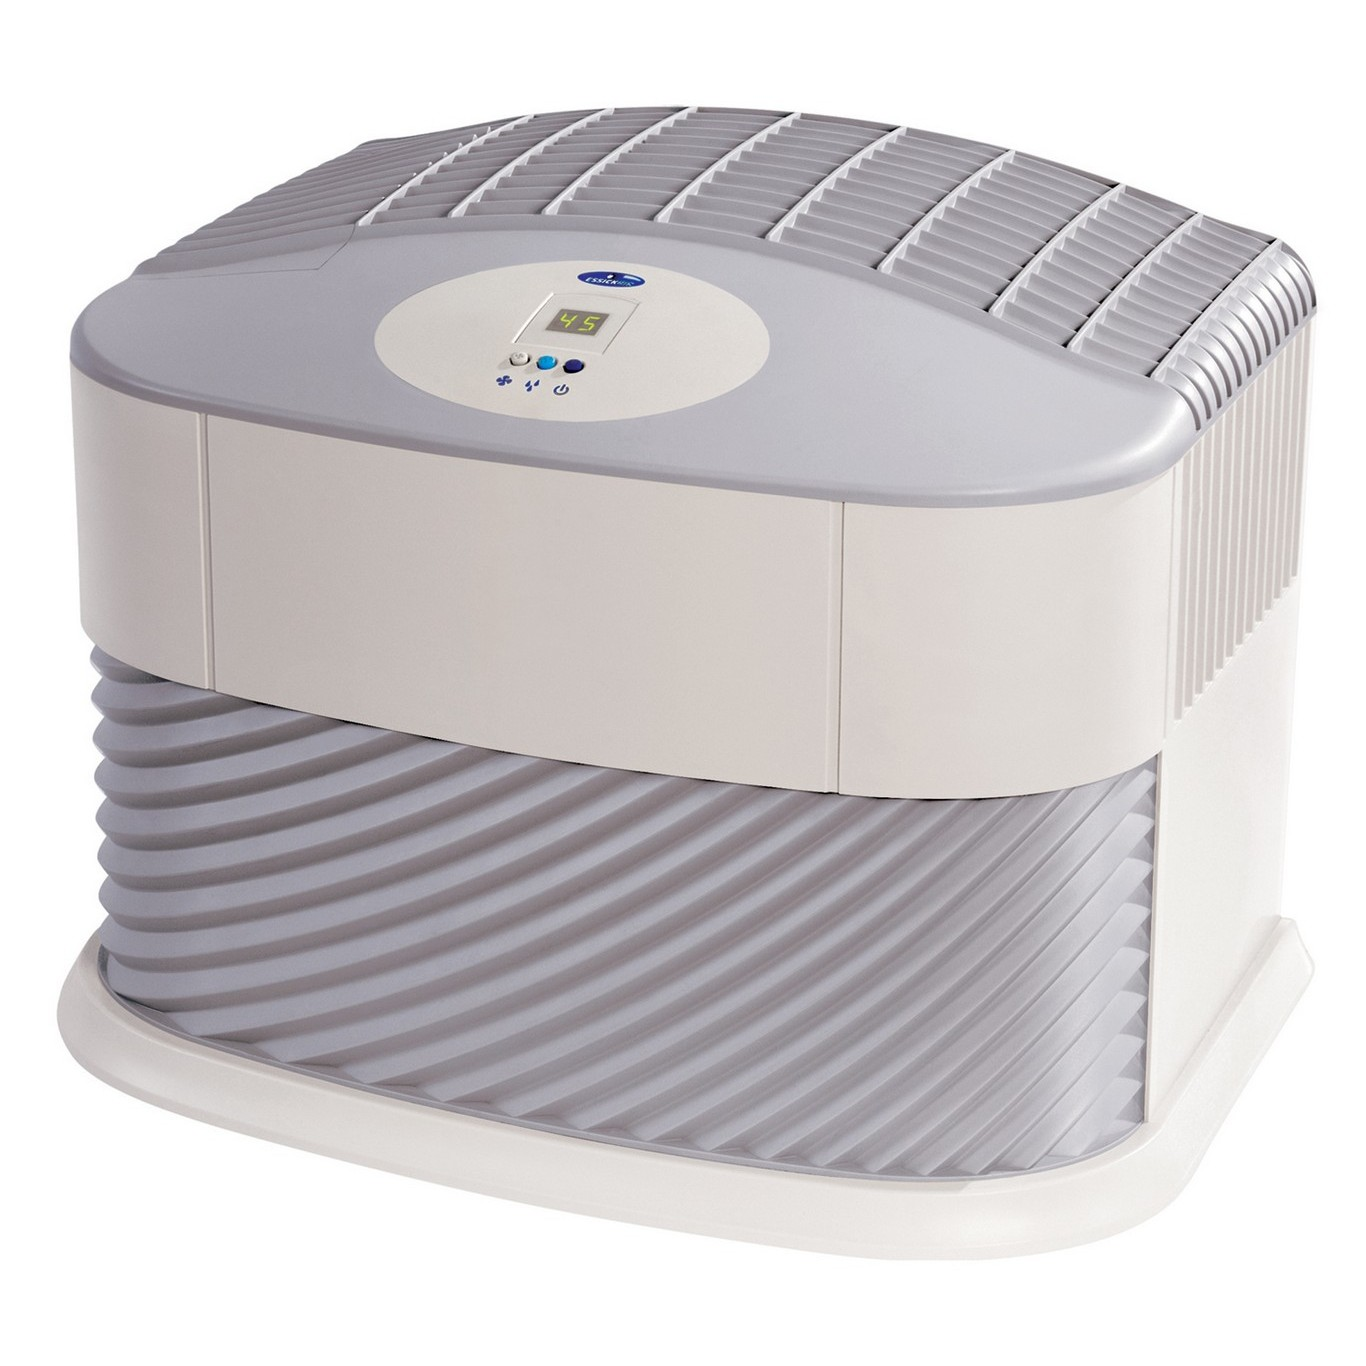 air ed11 600 whole house evaporative humidifier genuine essick air  #405C8B